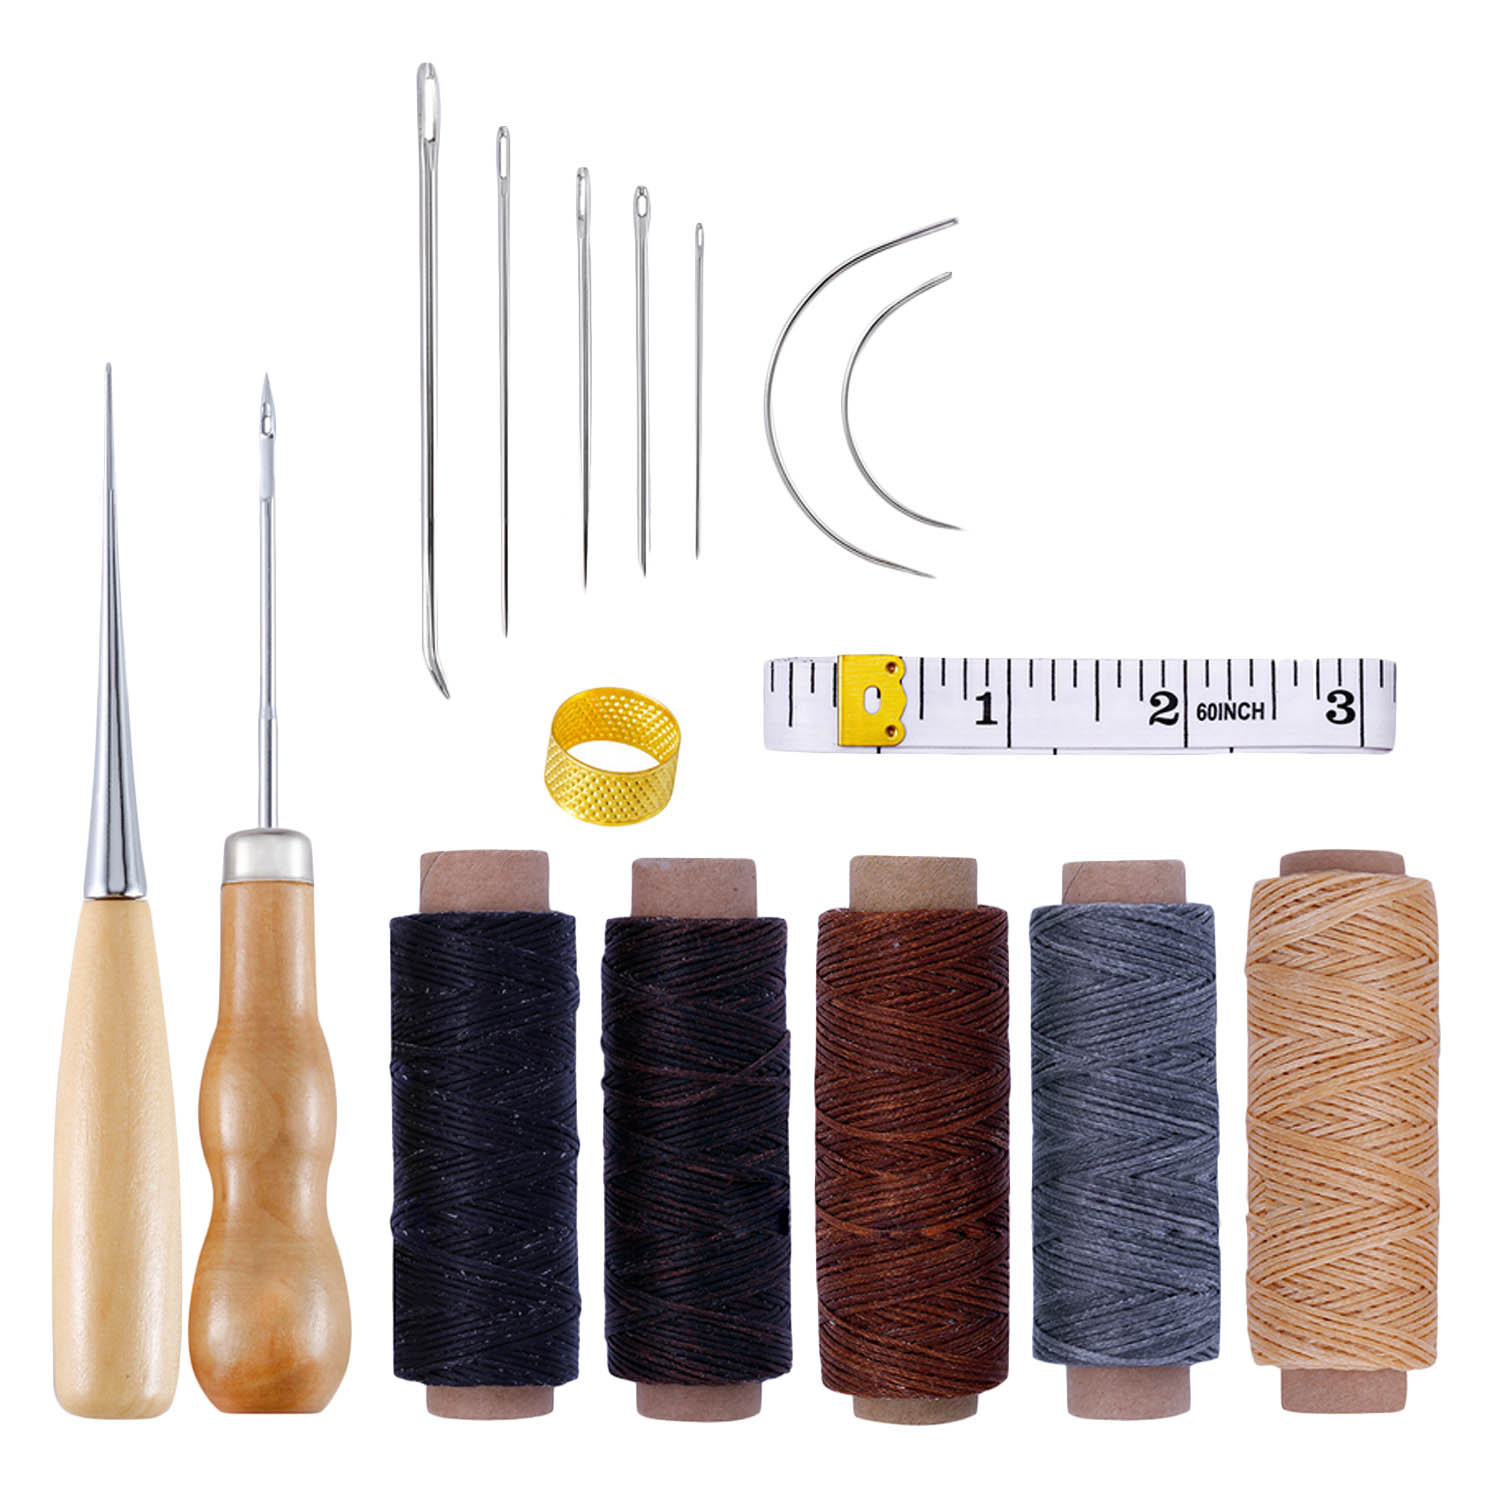 16pcs Leather Craft Stitching Tools Set with Hand Sewing Needles Awl Thimble Waxed Thread for DIY Leathercraft Sewing image